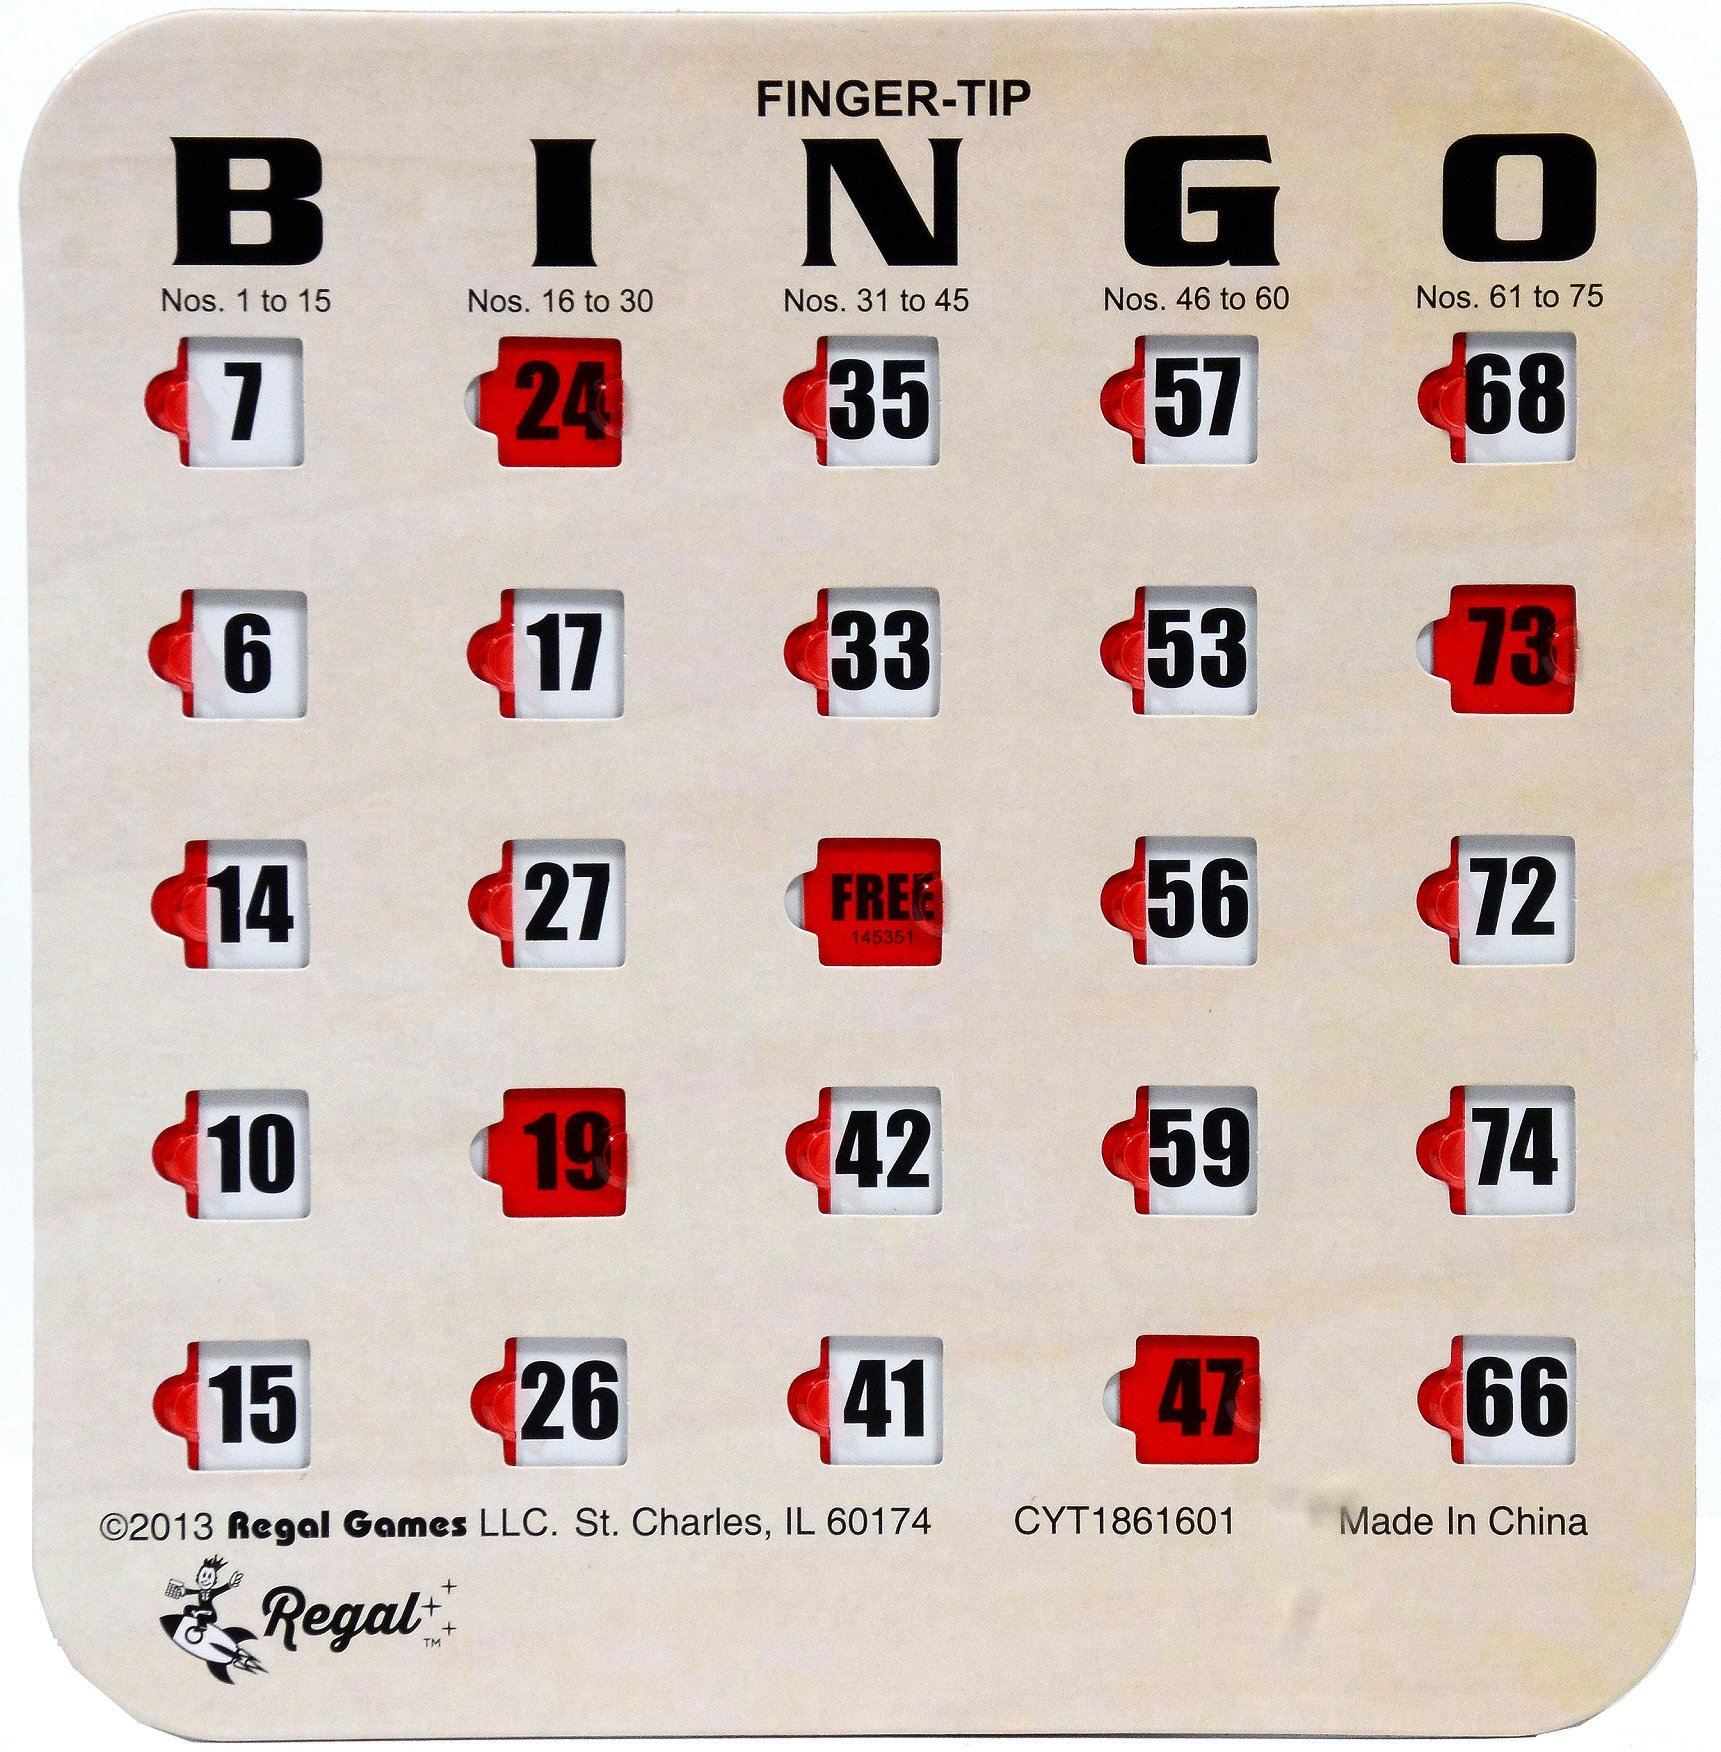 Regal Games 25 Woodgrain/Tan Fingertip Shutter Slide Bingo Cards by Regal Games (Image #1)